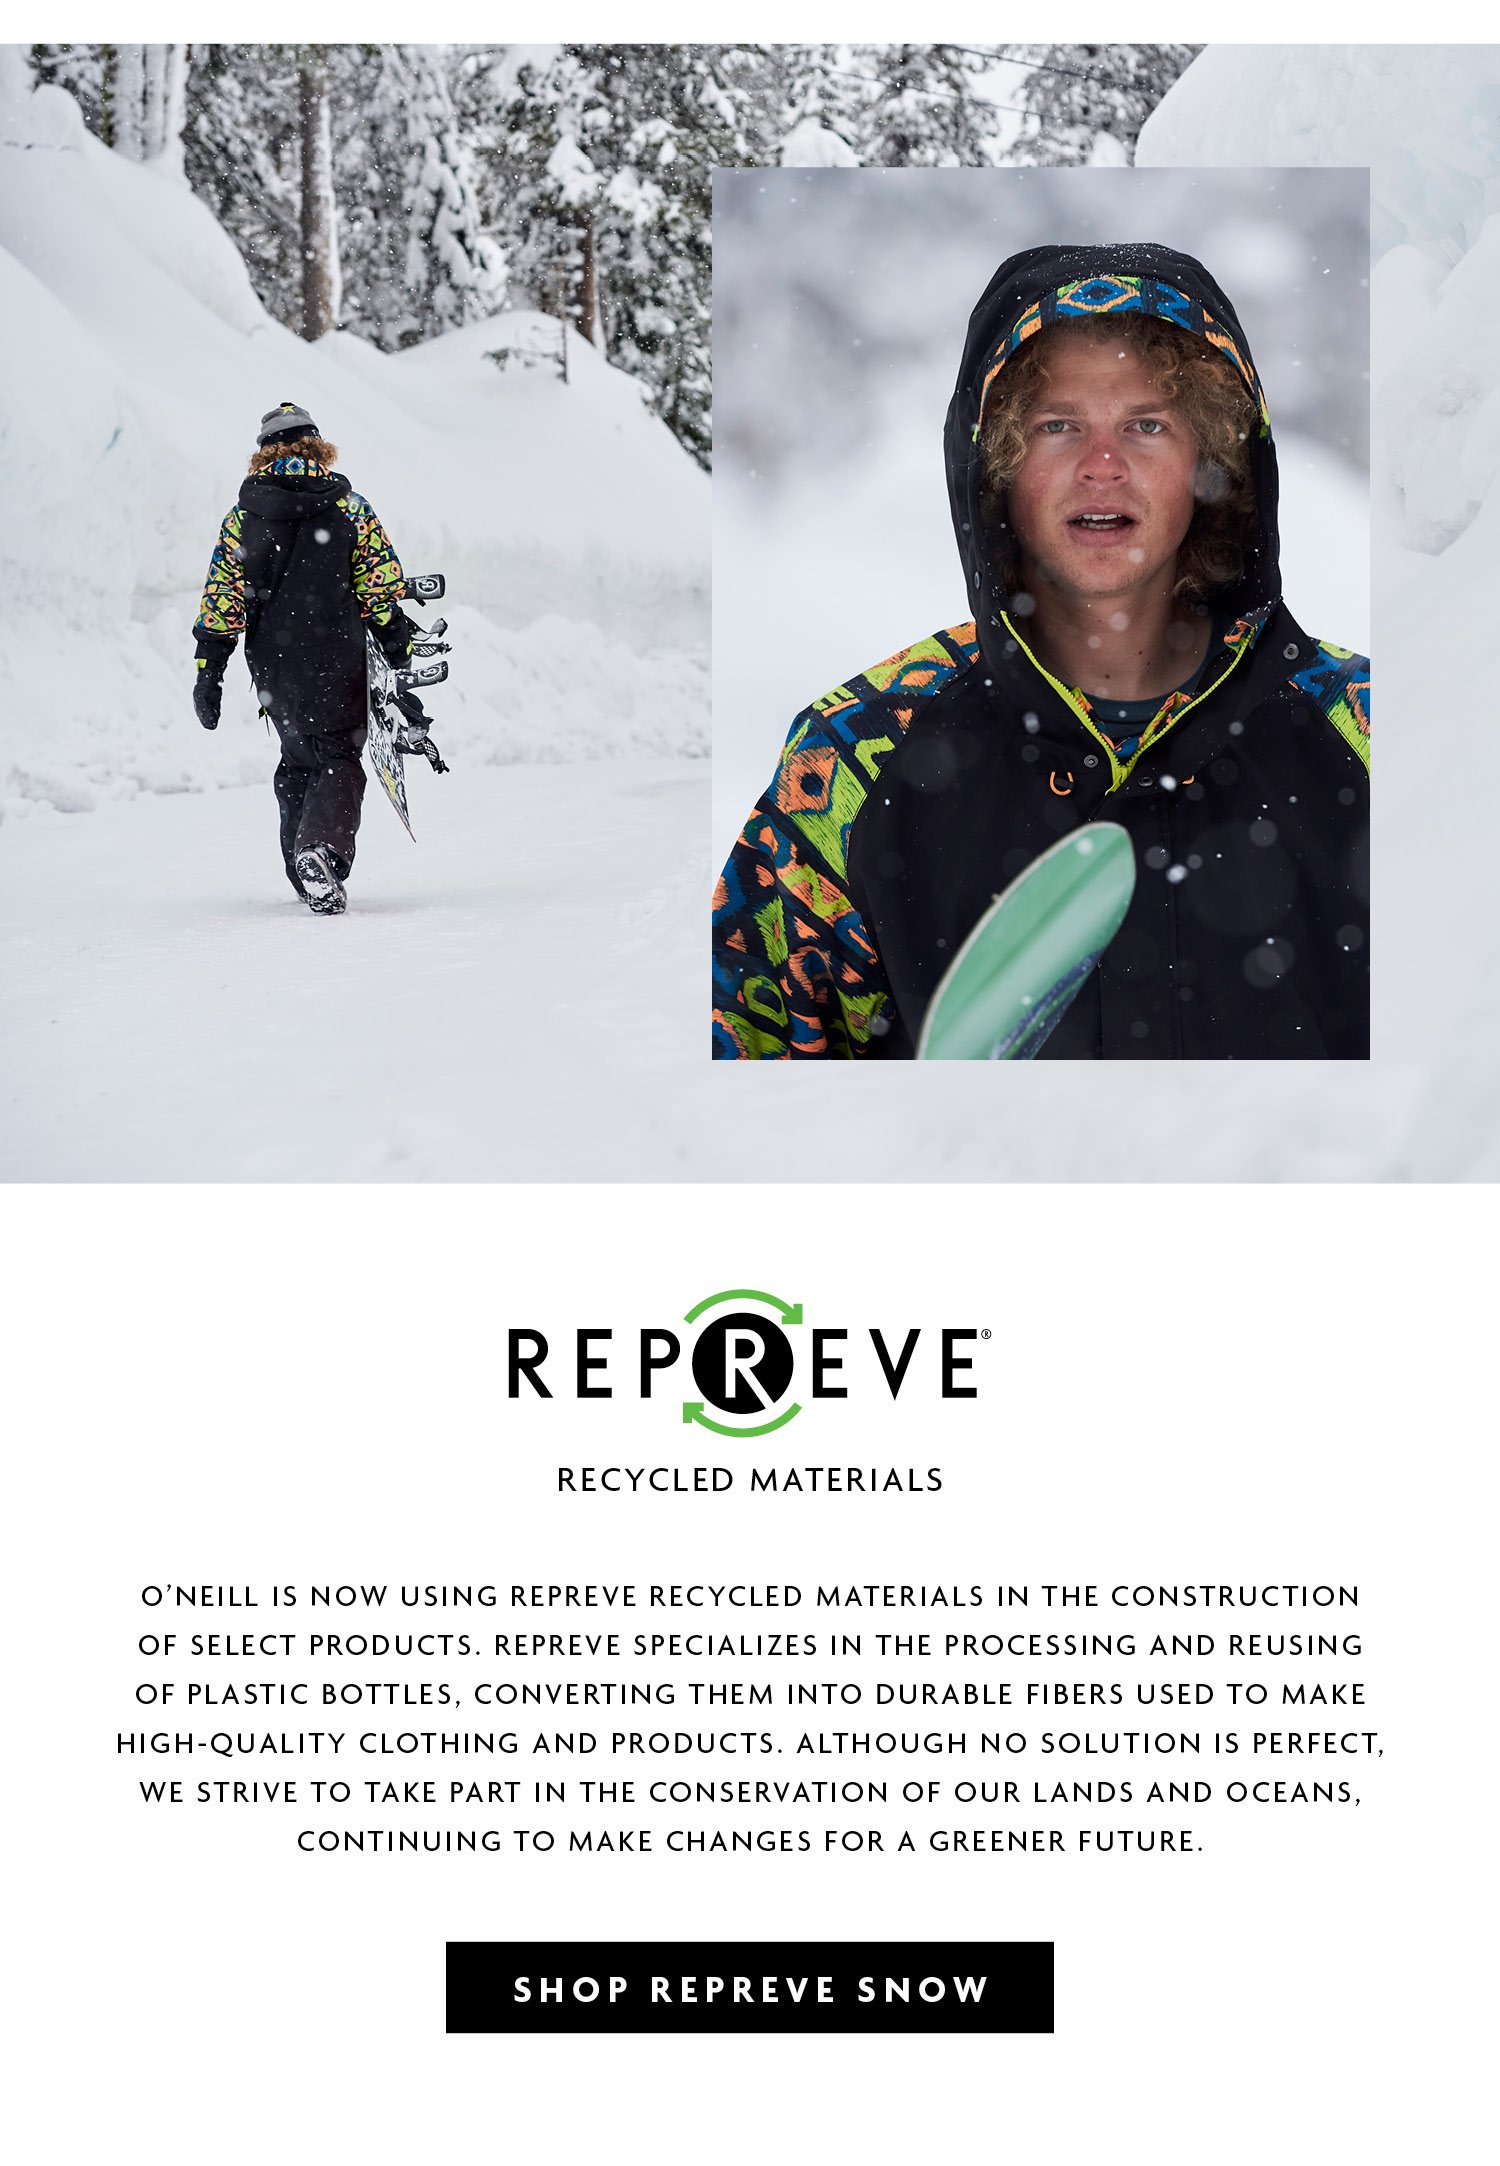 Repreve - Recycled Materials